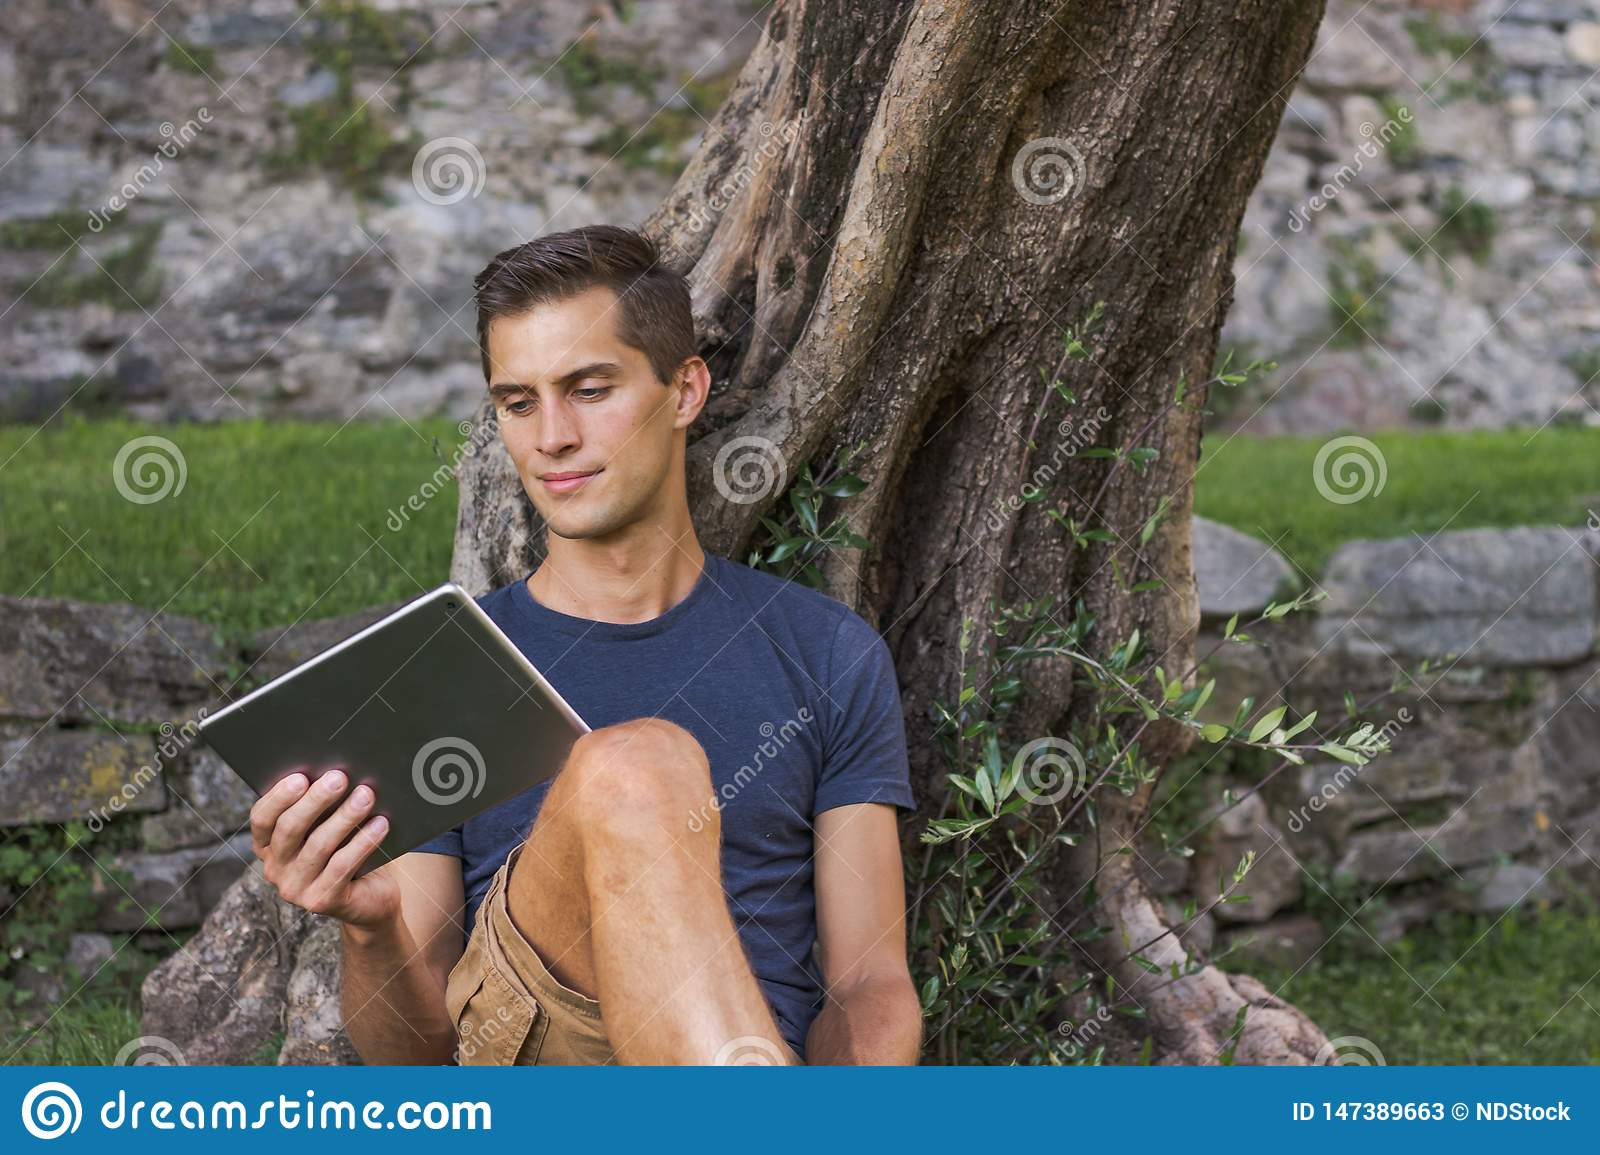 Man reading tablet and enjoy rest in a park under tree